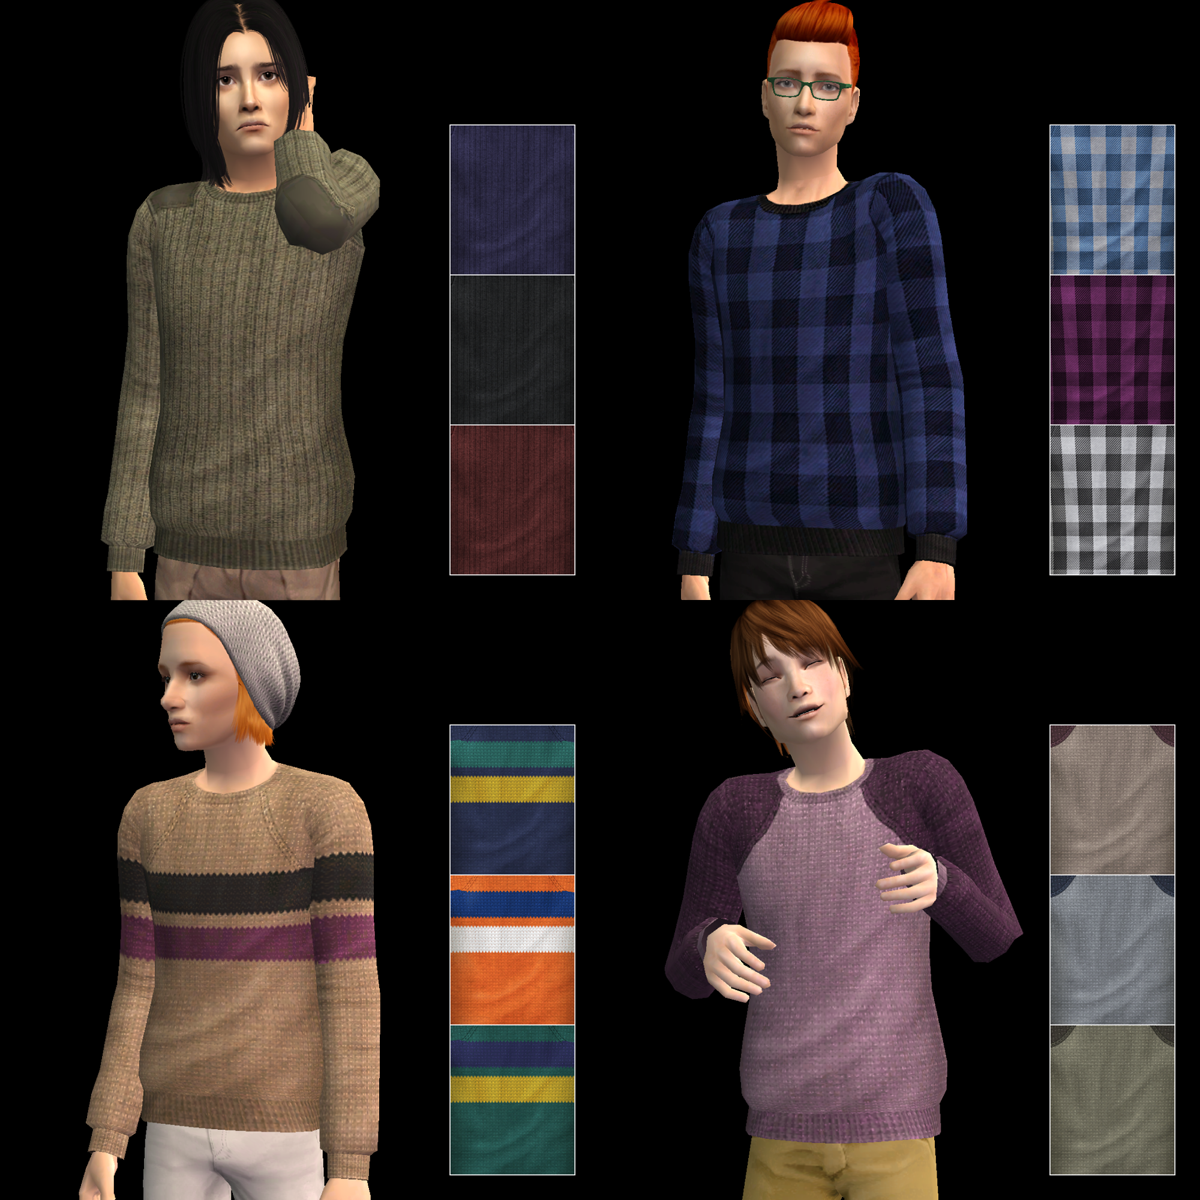 Sims 2 Clothing 19